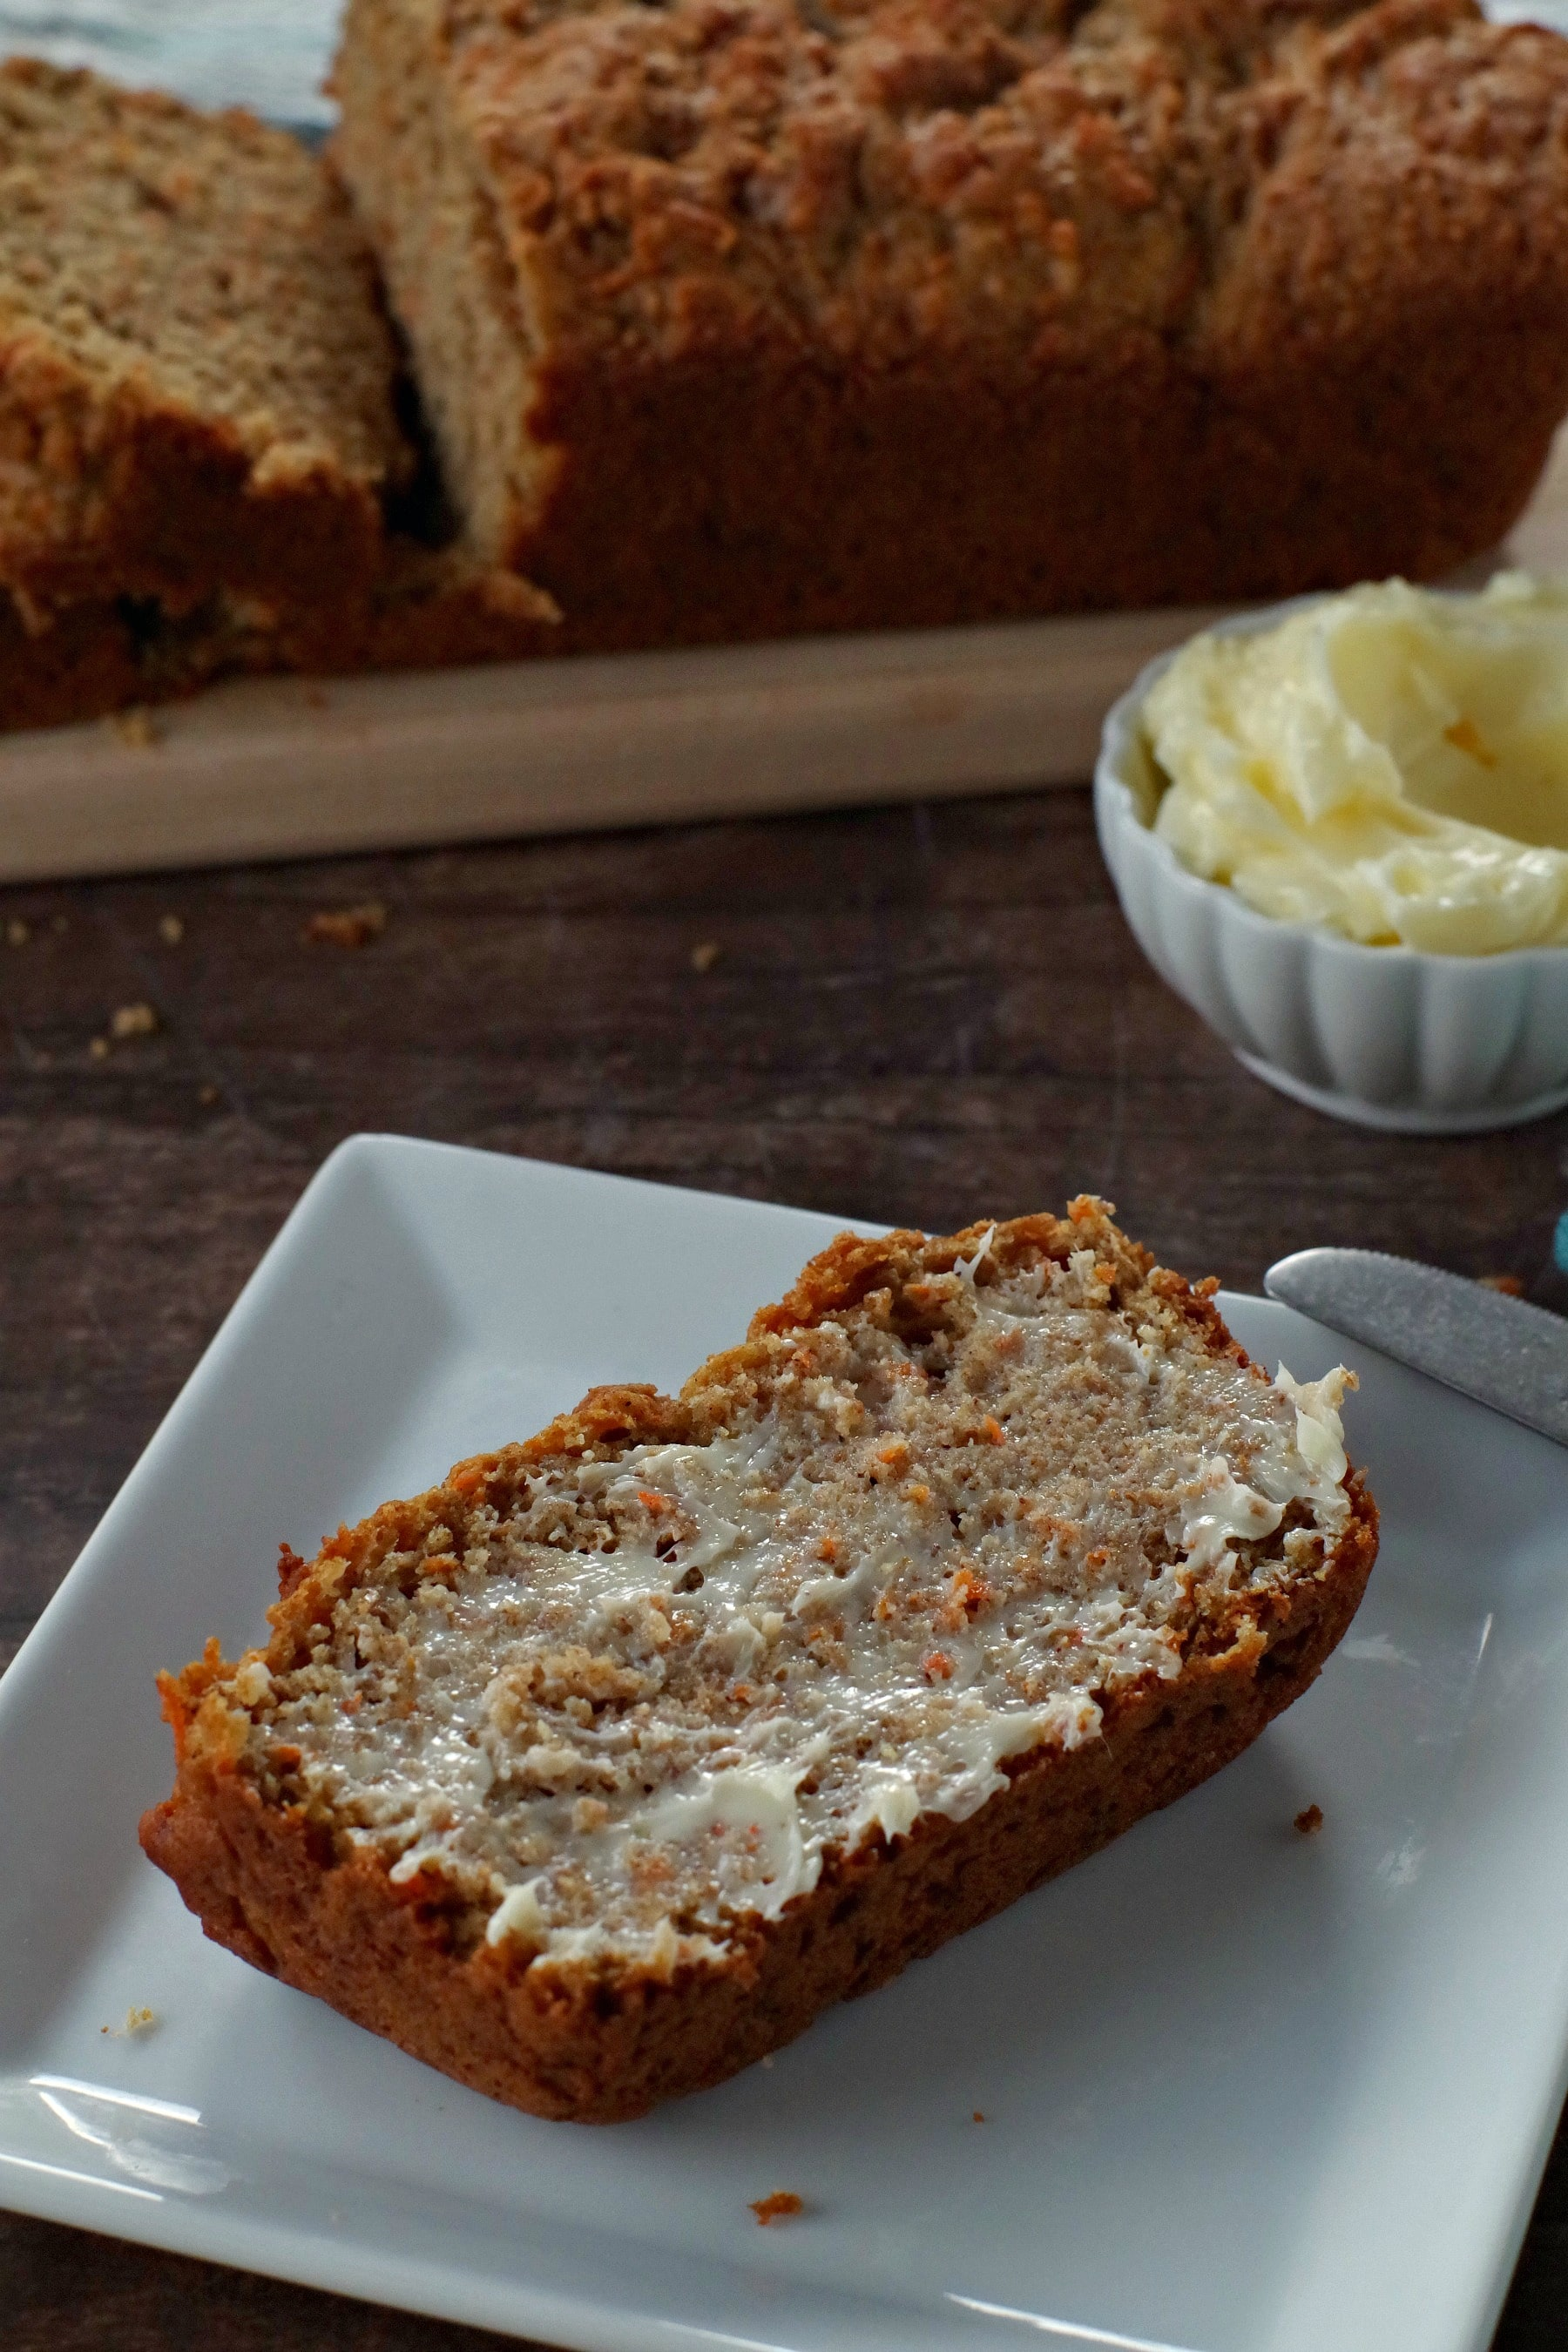 healthy carrot loaf slice with butter on a white plate with white dish of butter in the background. There is also a narrow wooden bread board in the background with the remainder of the carrot loaf on it (partially sliced)